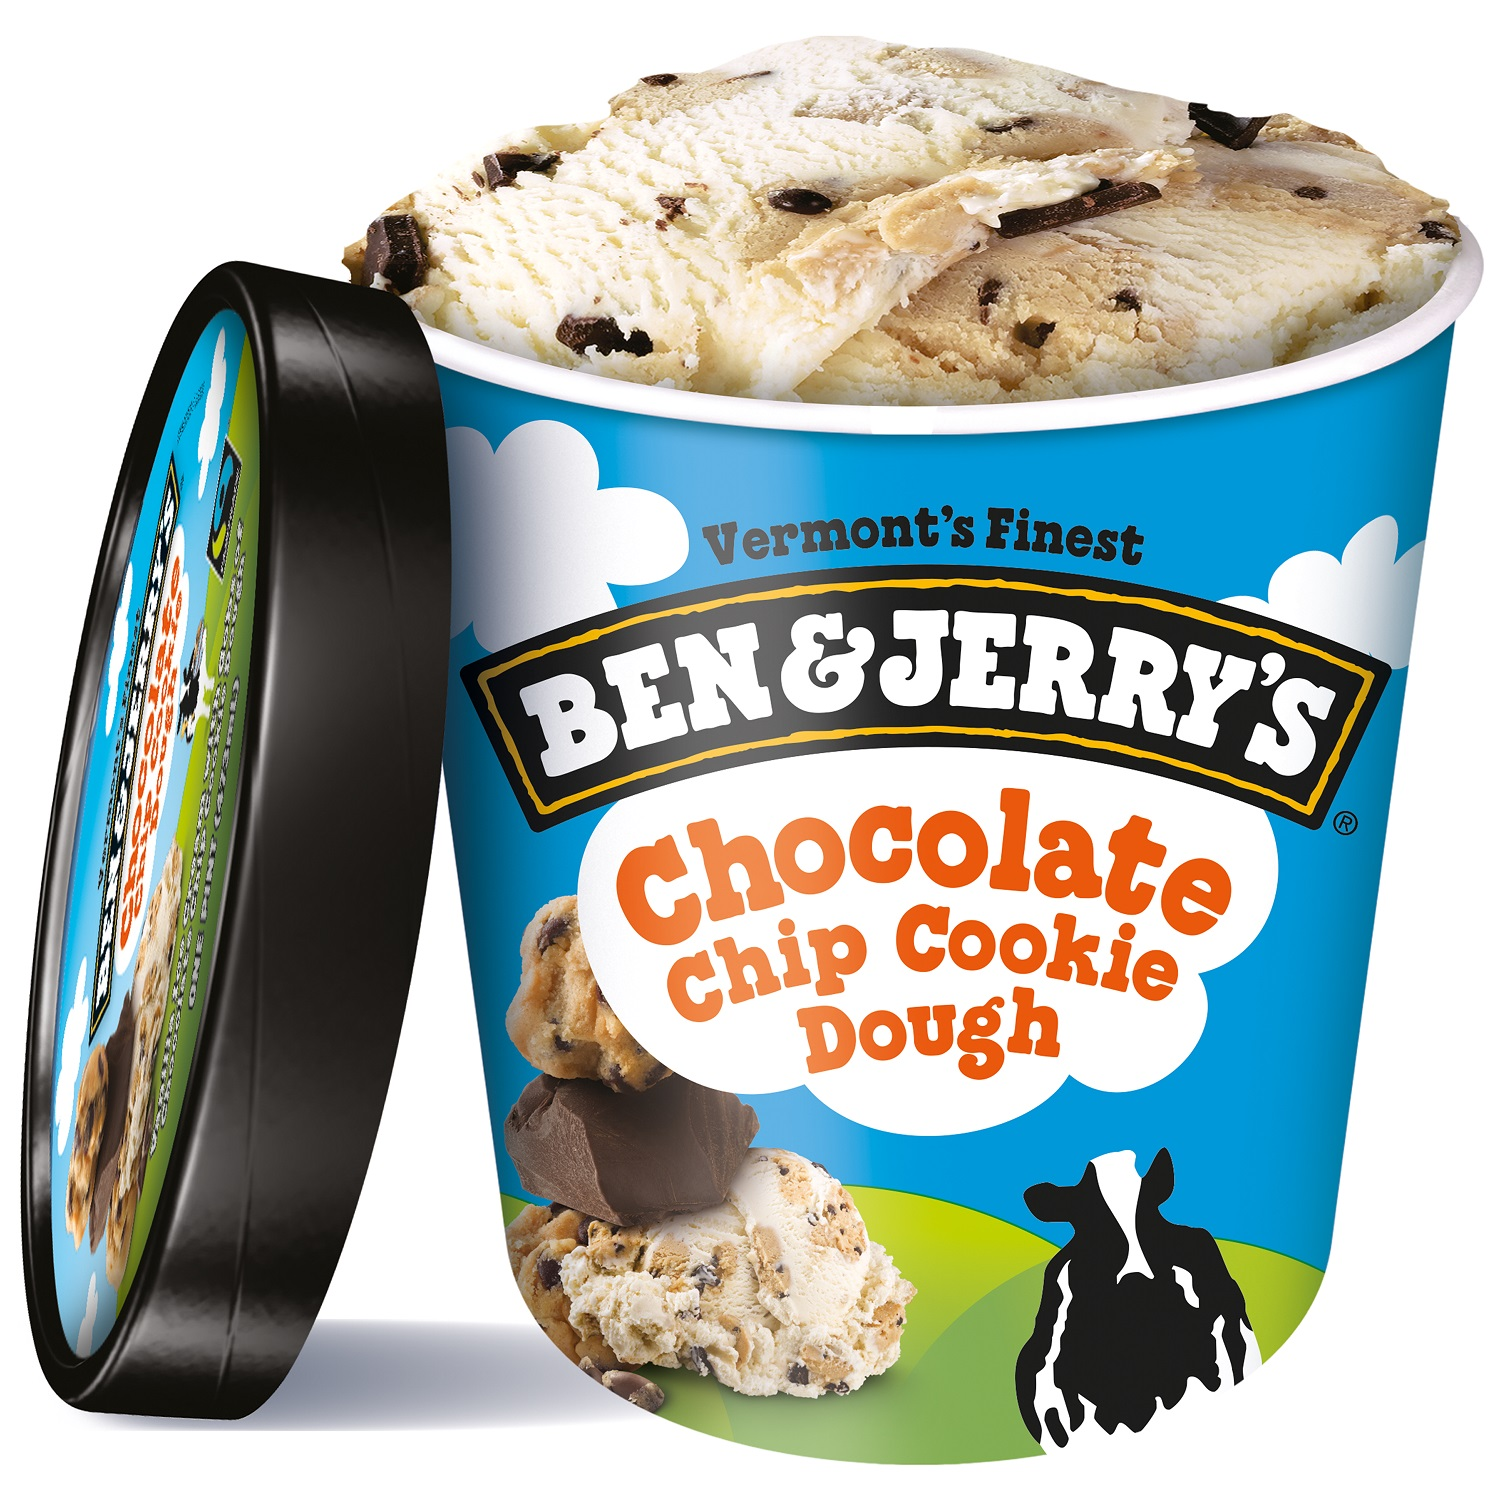 Ben & Jerry's Chocolate Chip Cookie Doug